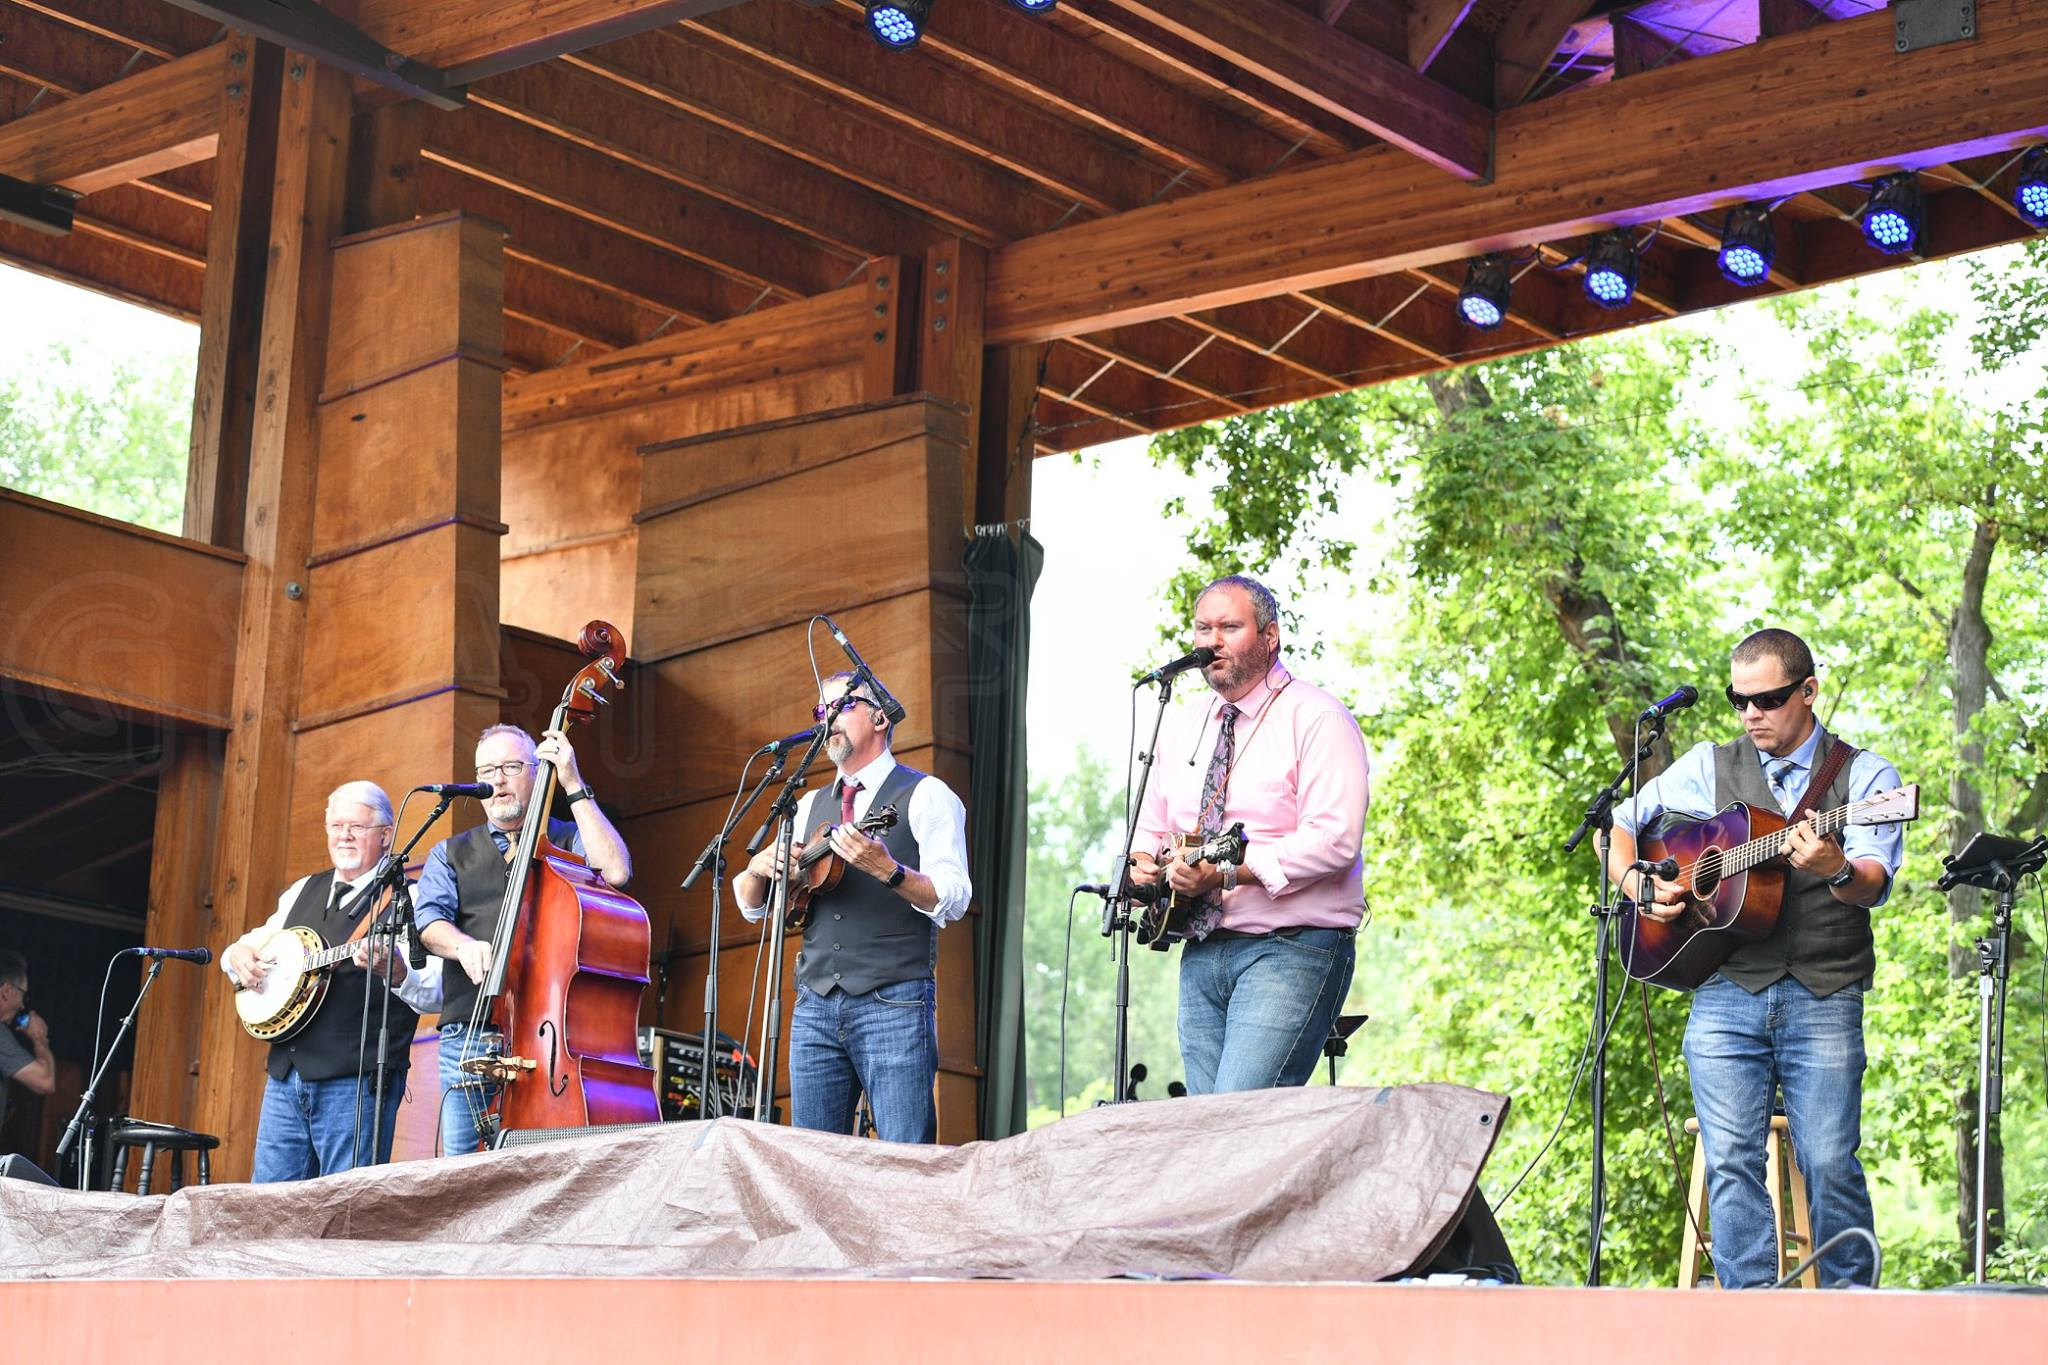 Balsam Range Wins IBMA Entertainer of the Year Award